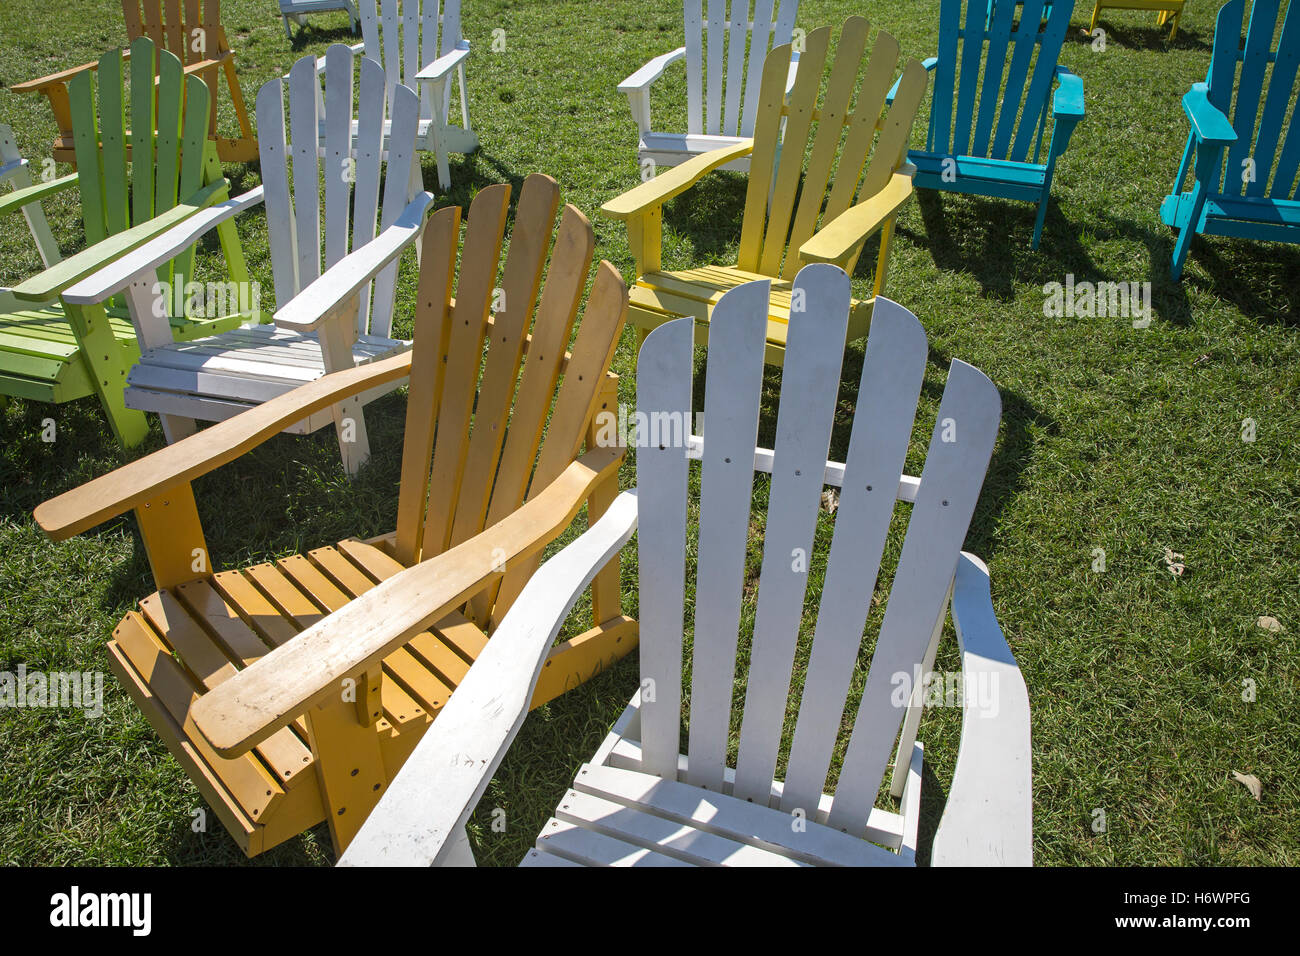 Wood Deck Chairs Painted In Different Colors On Grass.